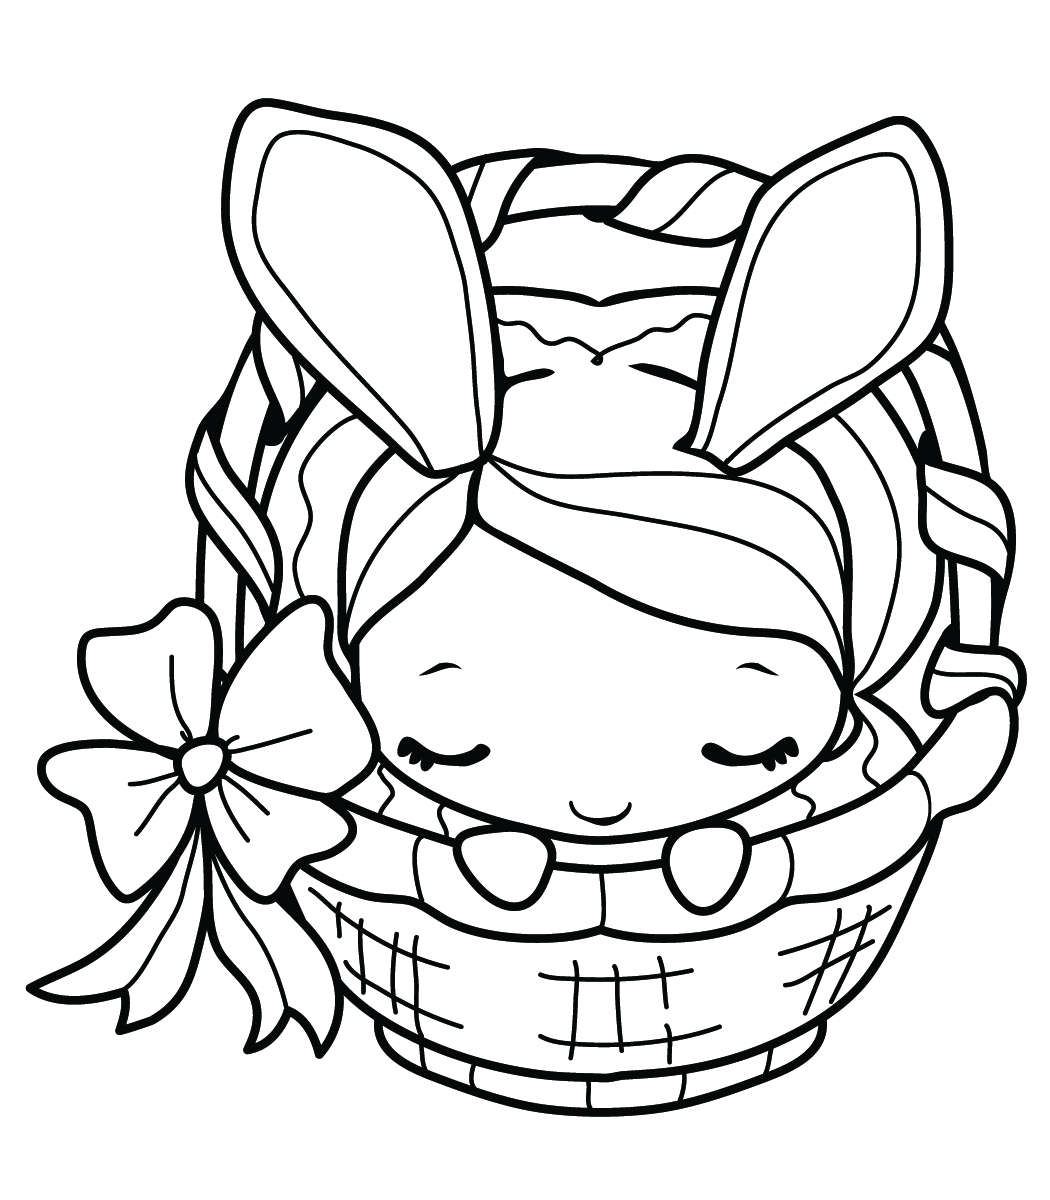 bunny coloring pages for girls - photo#1